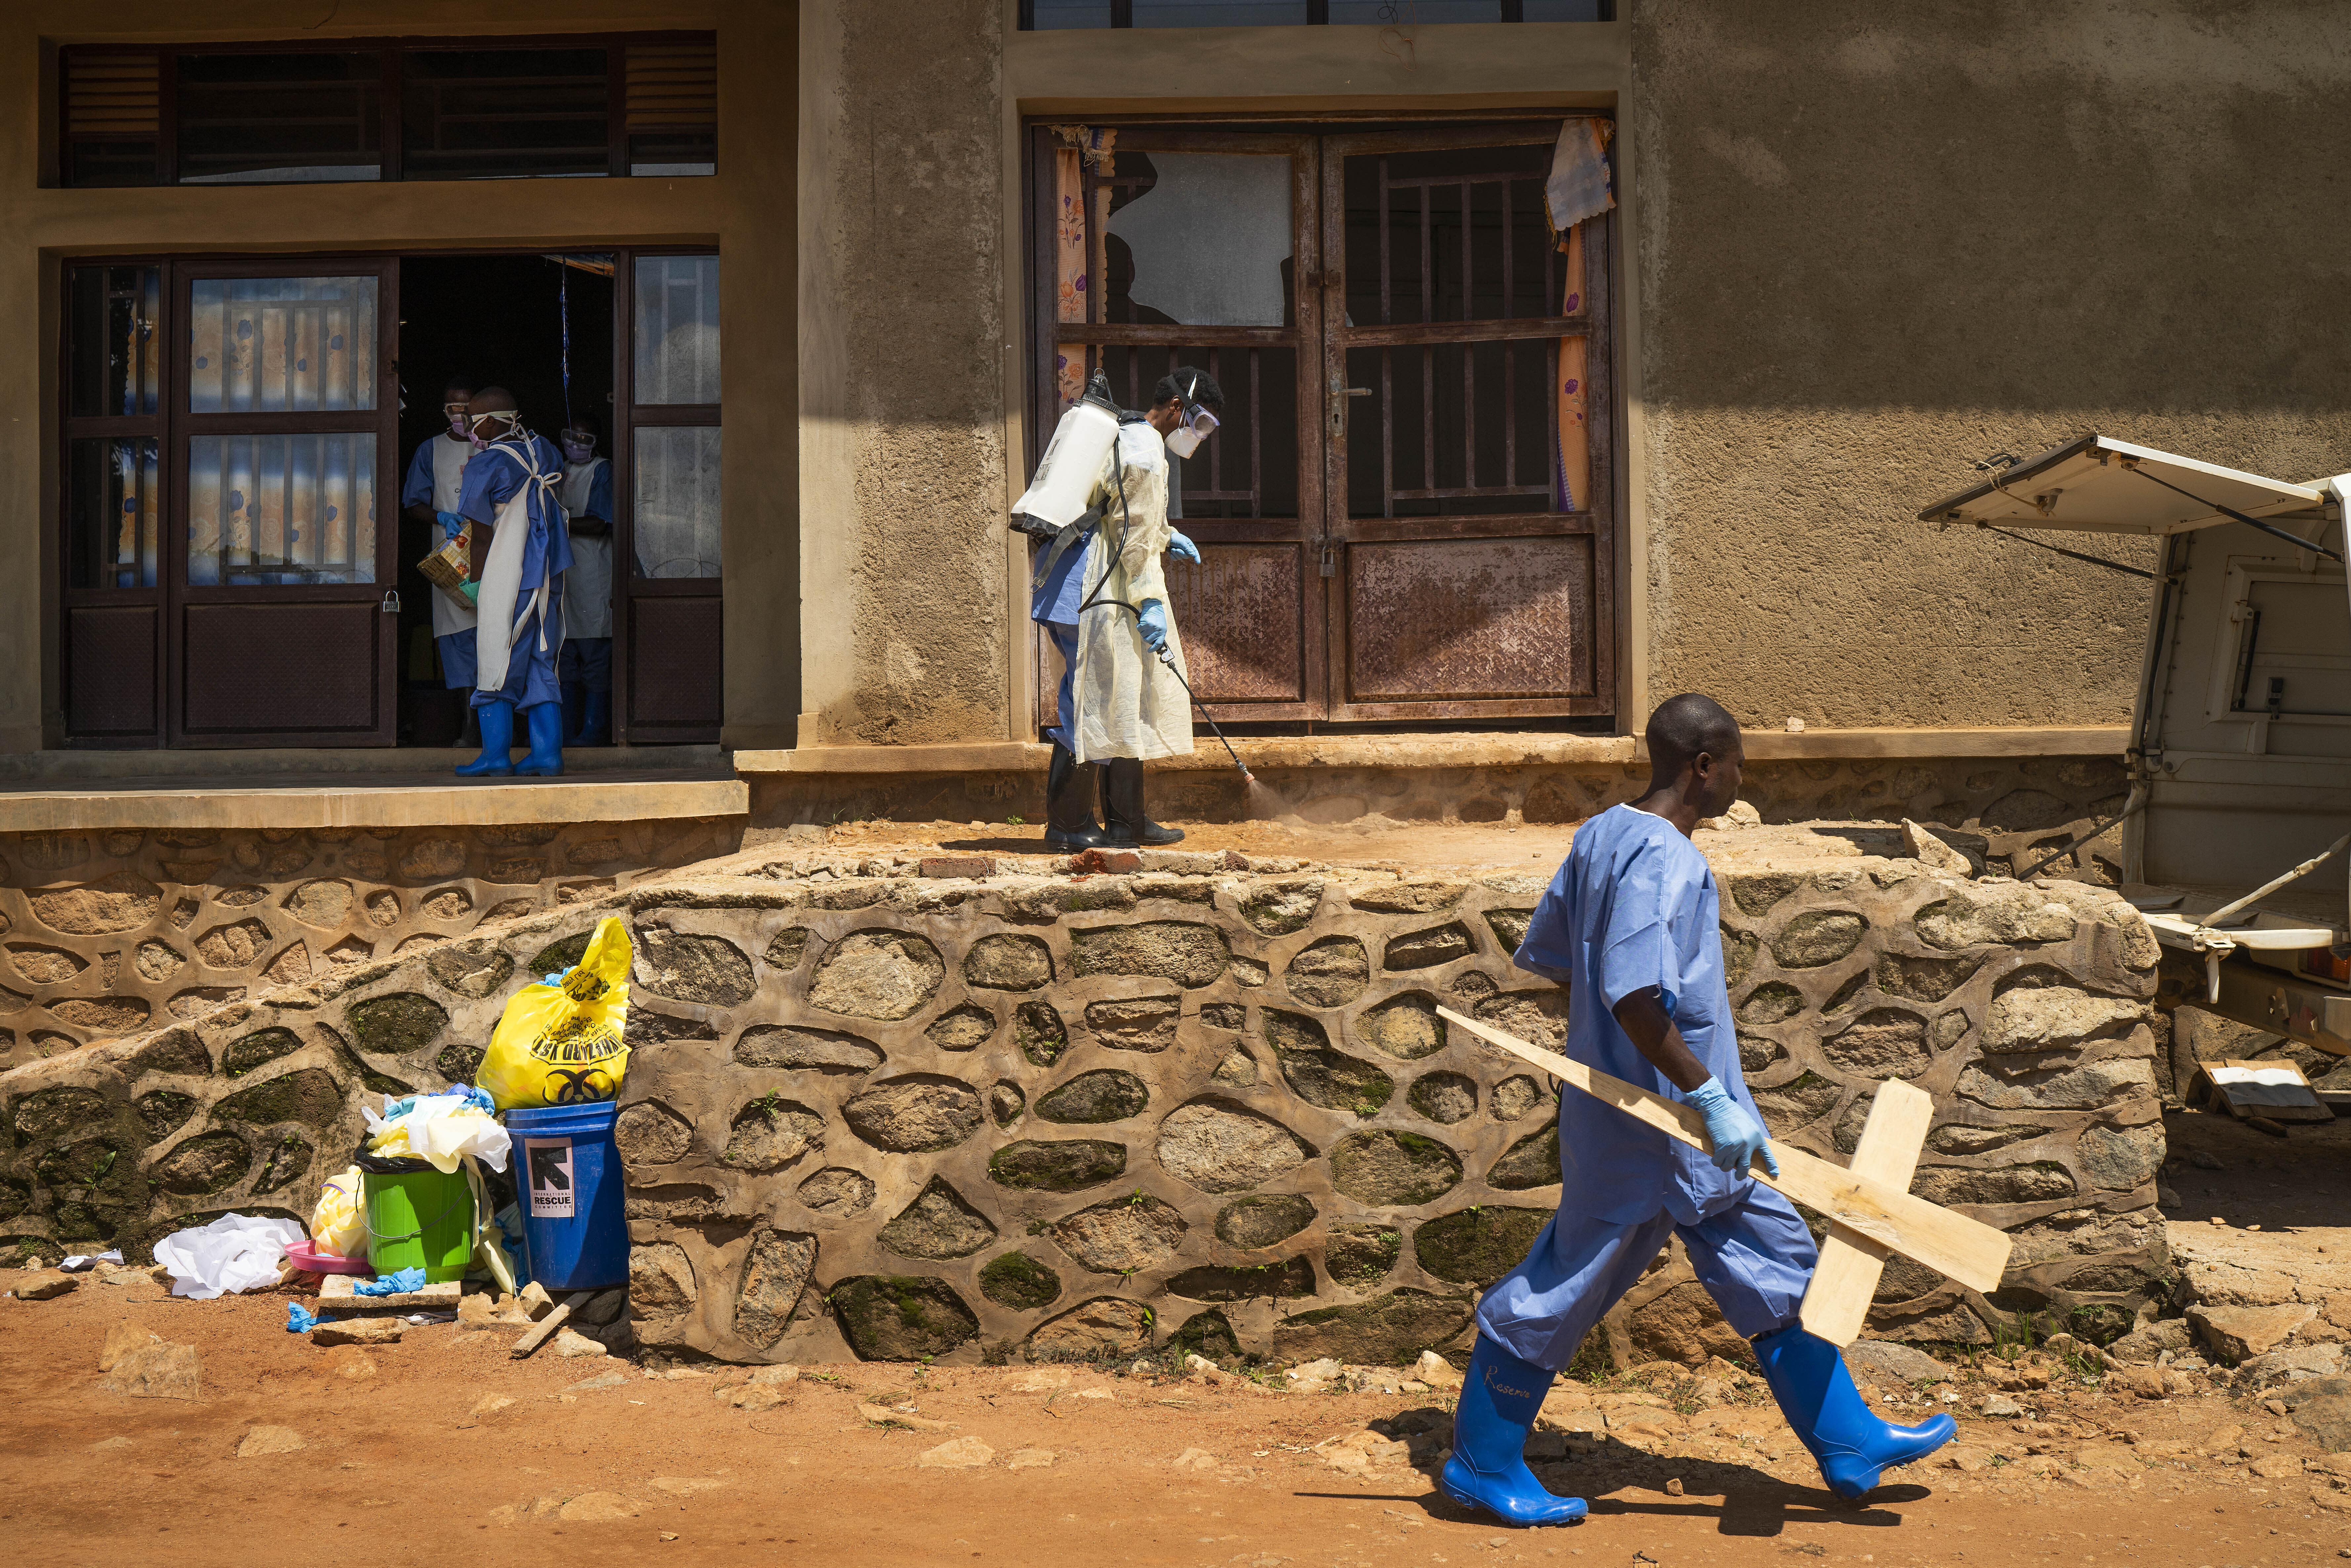 Uganda fears Ebola outbreak after Congolese fish trader's death